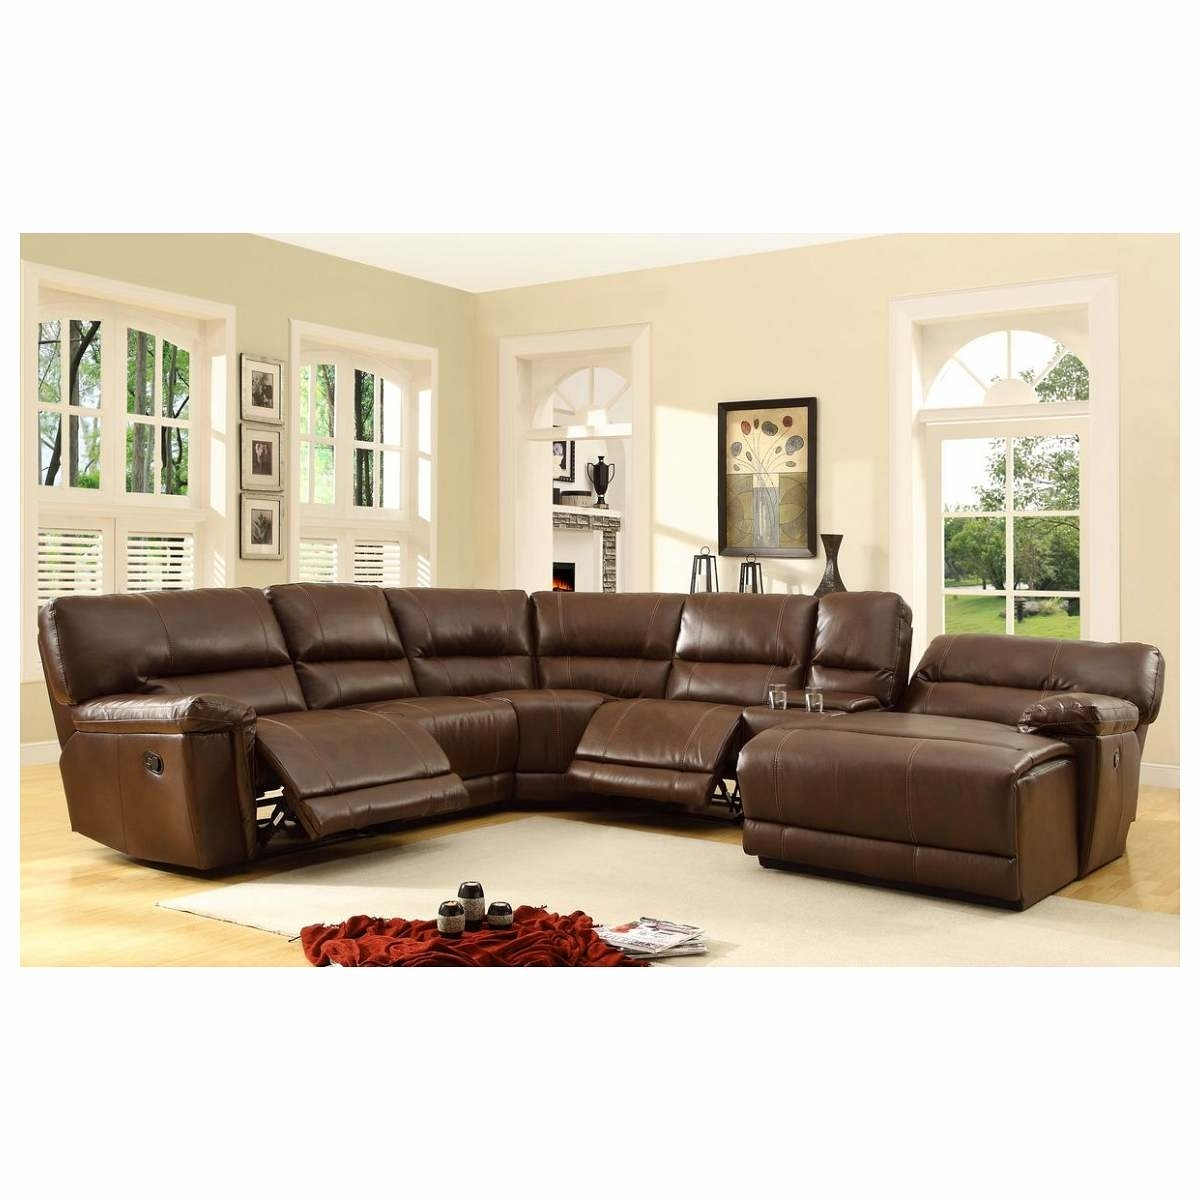 6 Pc Blythe Collection Brown Bonded Leather Match Upholstered Intended For Tampa Fl Sectional Sofas (View 8 of 10)